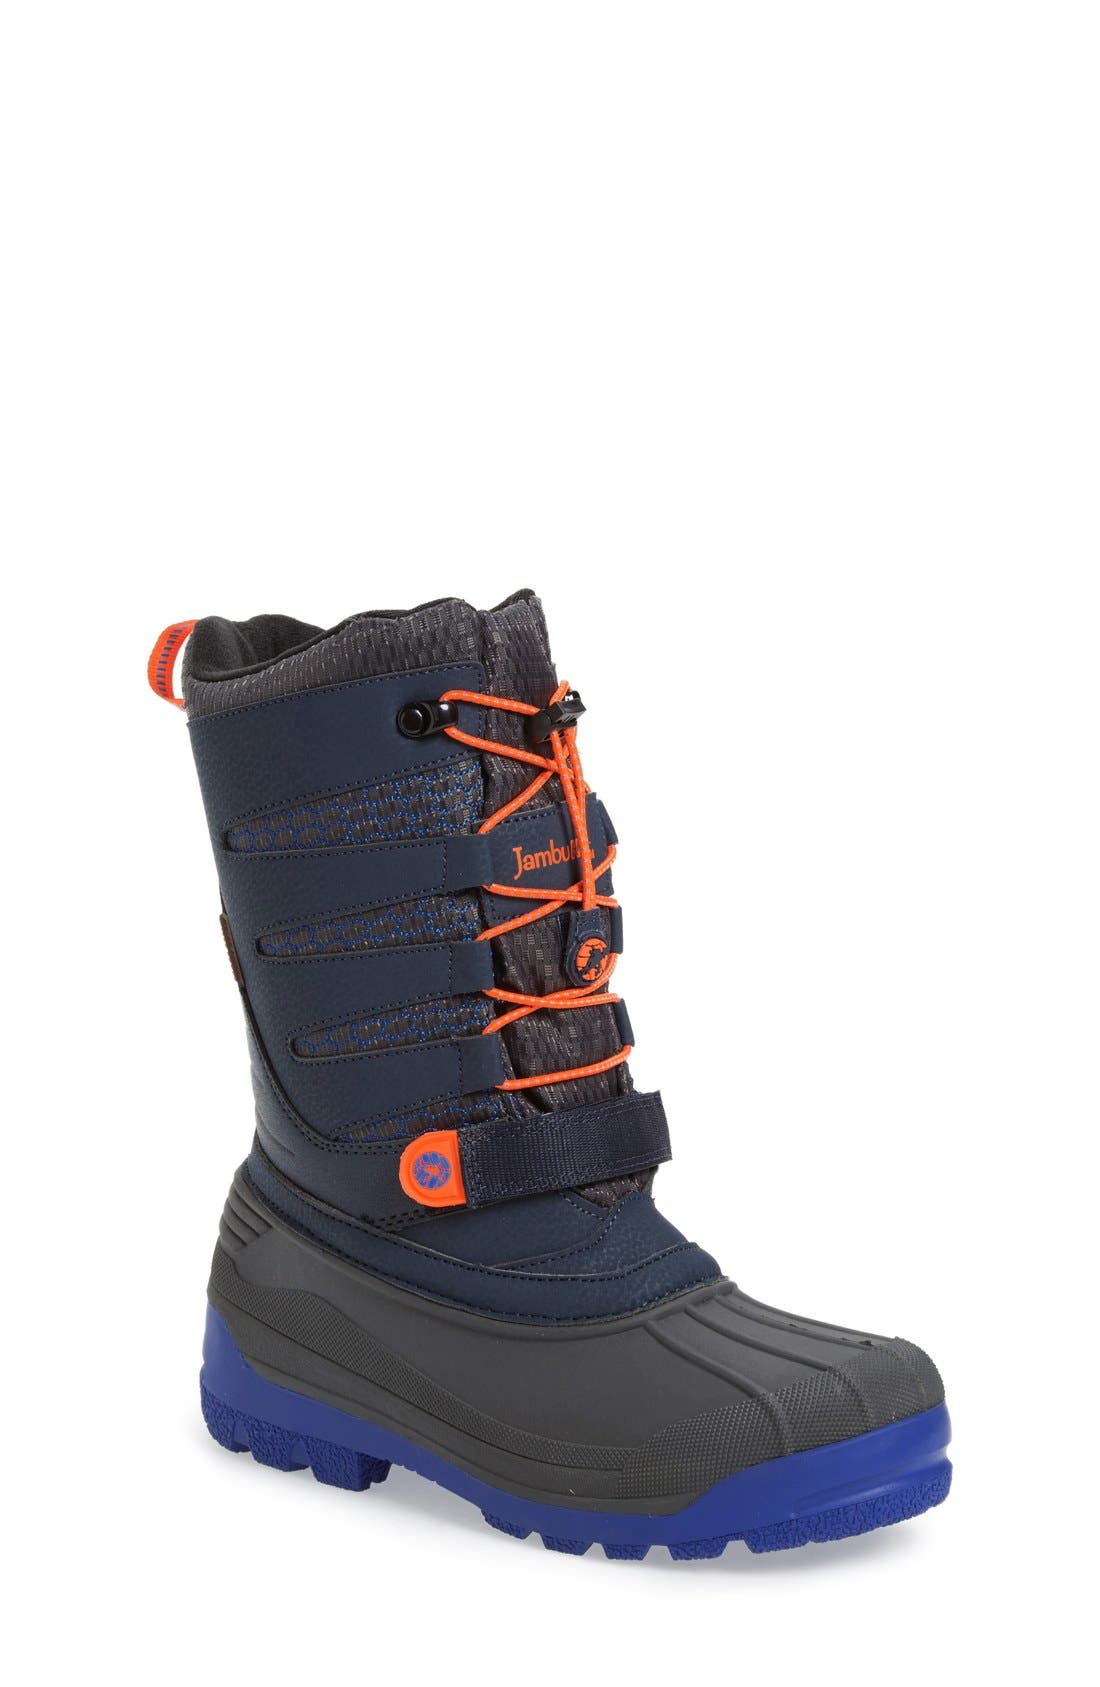 Jambu 'Venom' Waterproof Insulated Snow Boot (Toddler, Little Kid & Big Kid)